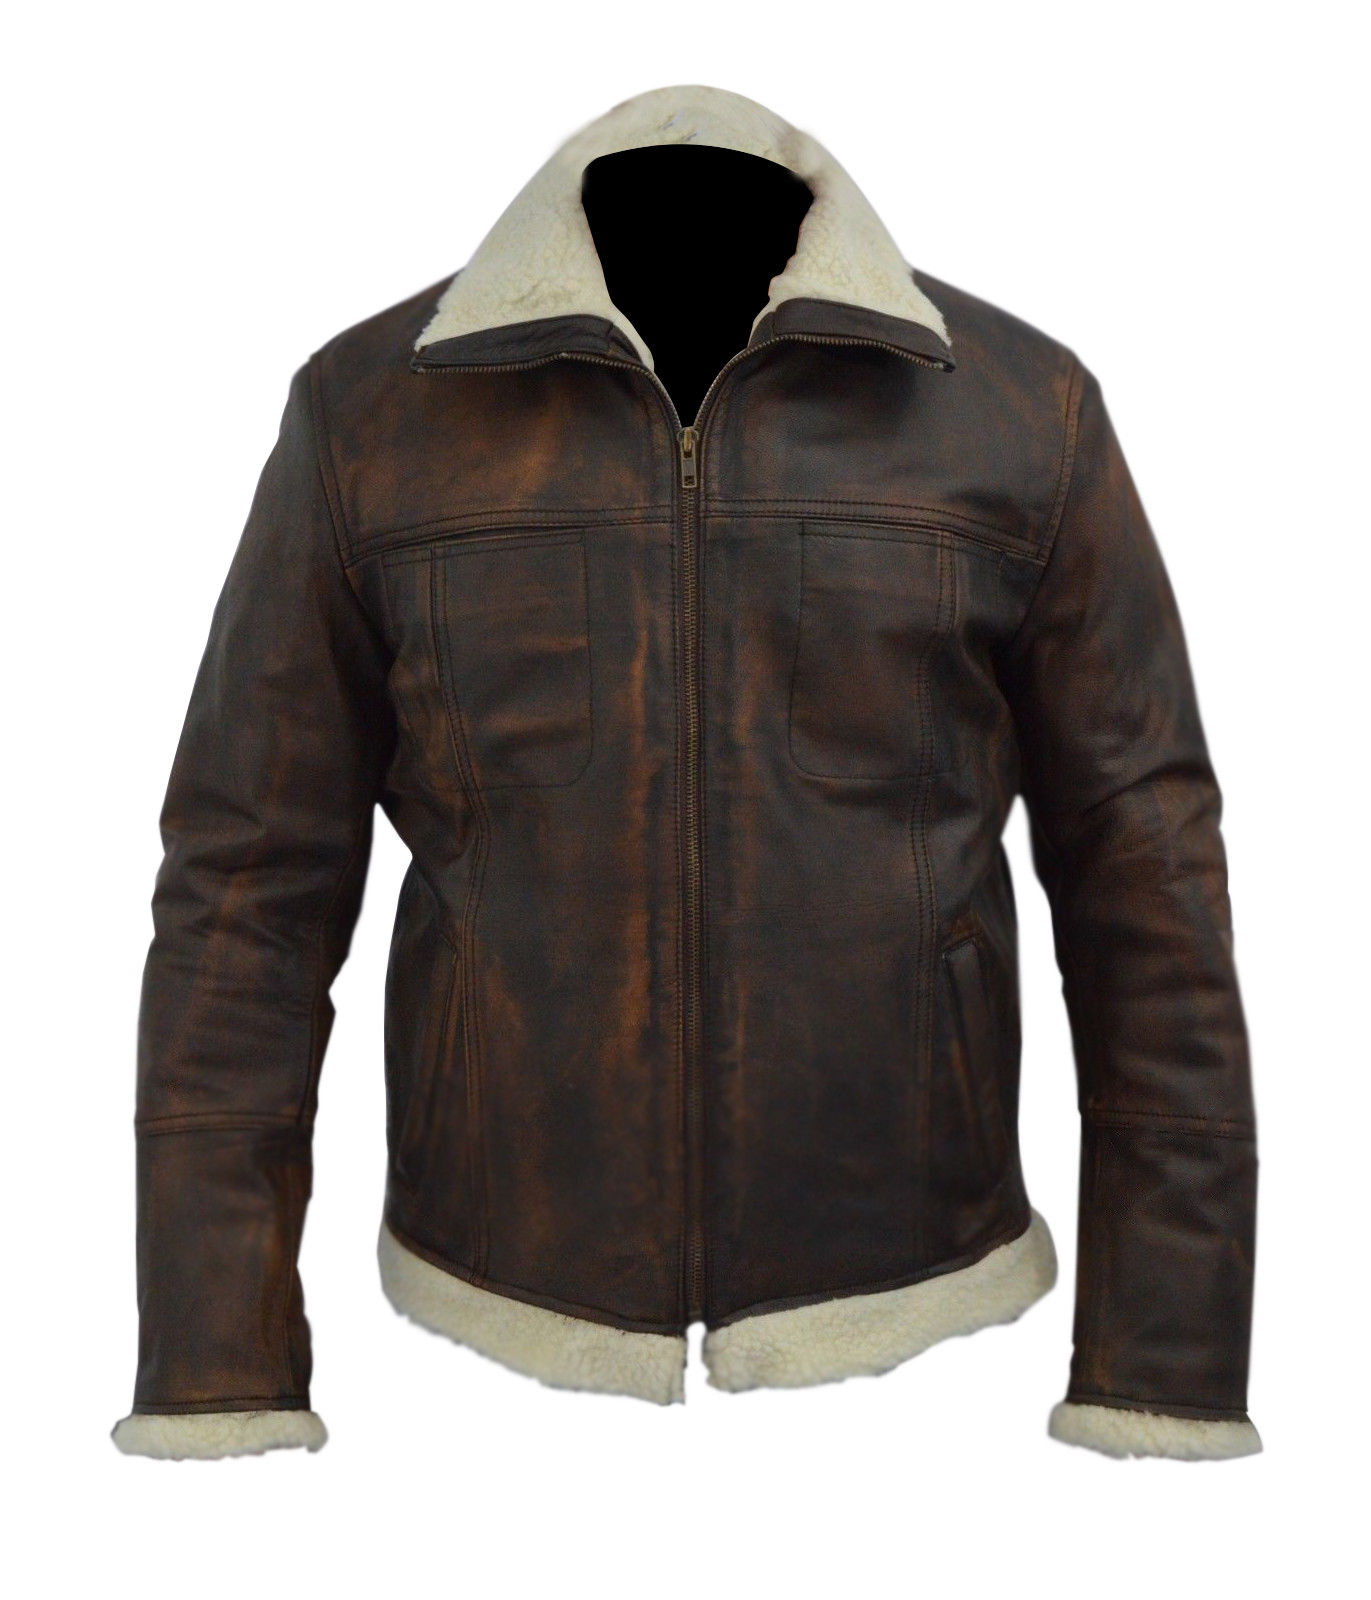 Xander Cage Vin Diesel Distressed Brown Leather Jacket